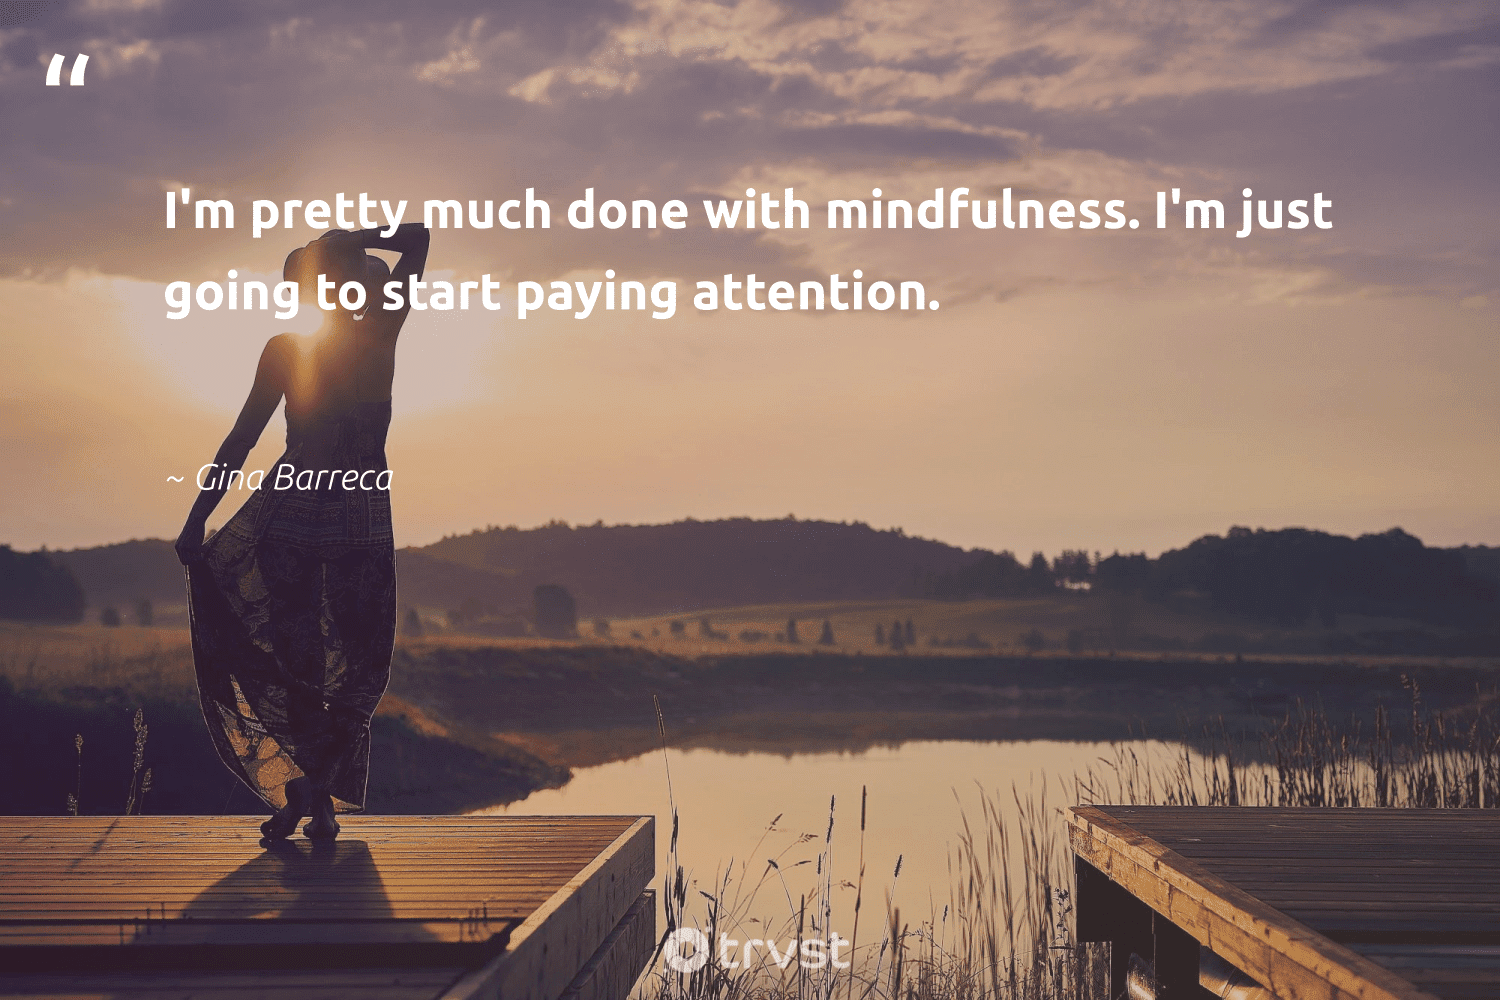 """""""I'm pretty much done with mindfulness. I'm just going to start paying attention.""""  - Gina Barreca #trvst #quotes #mindfulness #entrepreneurmindset #happiness #begreat #socialimpact #goals #positivity #health #changetheworld #meditation"""